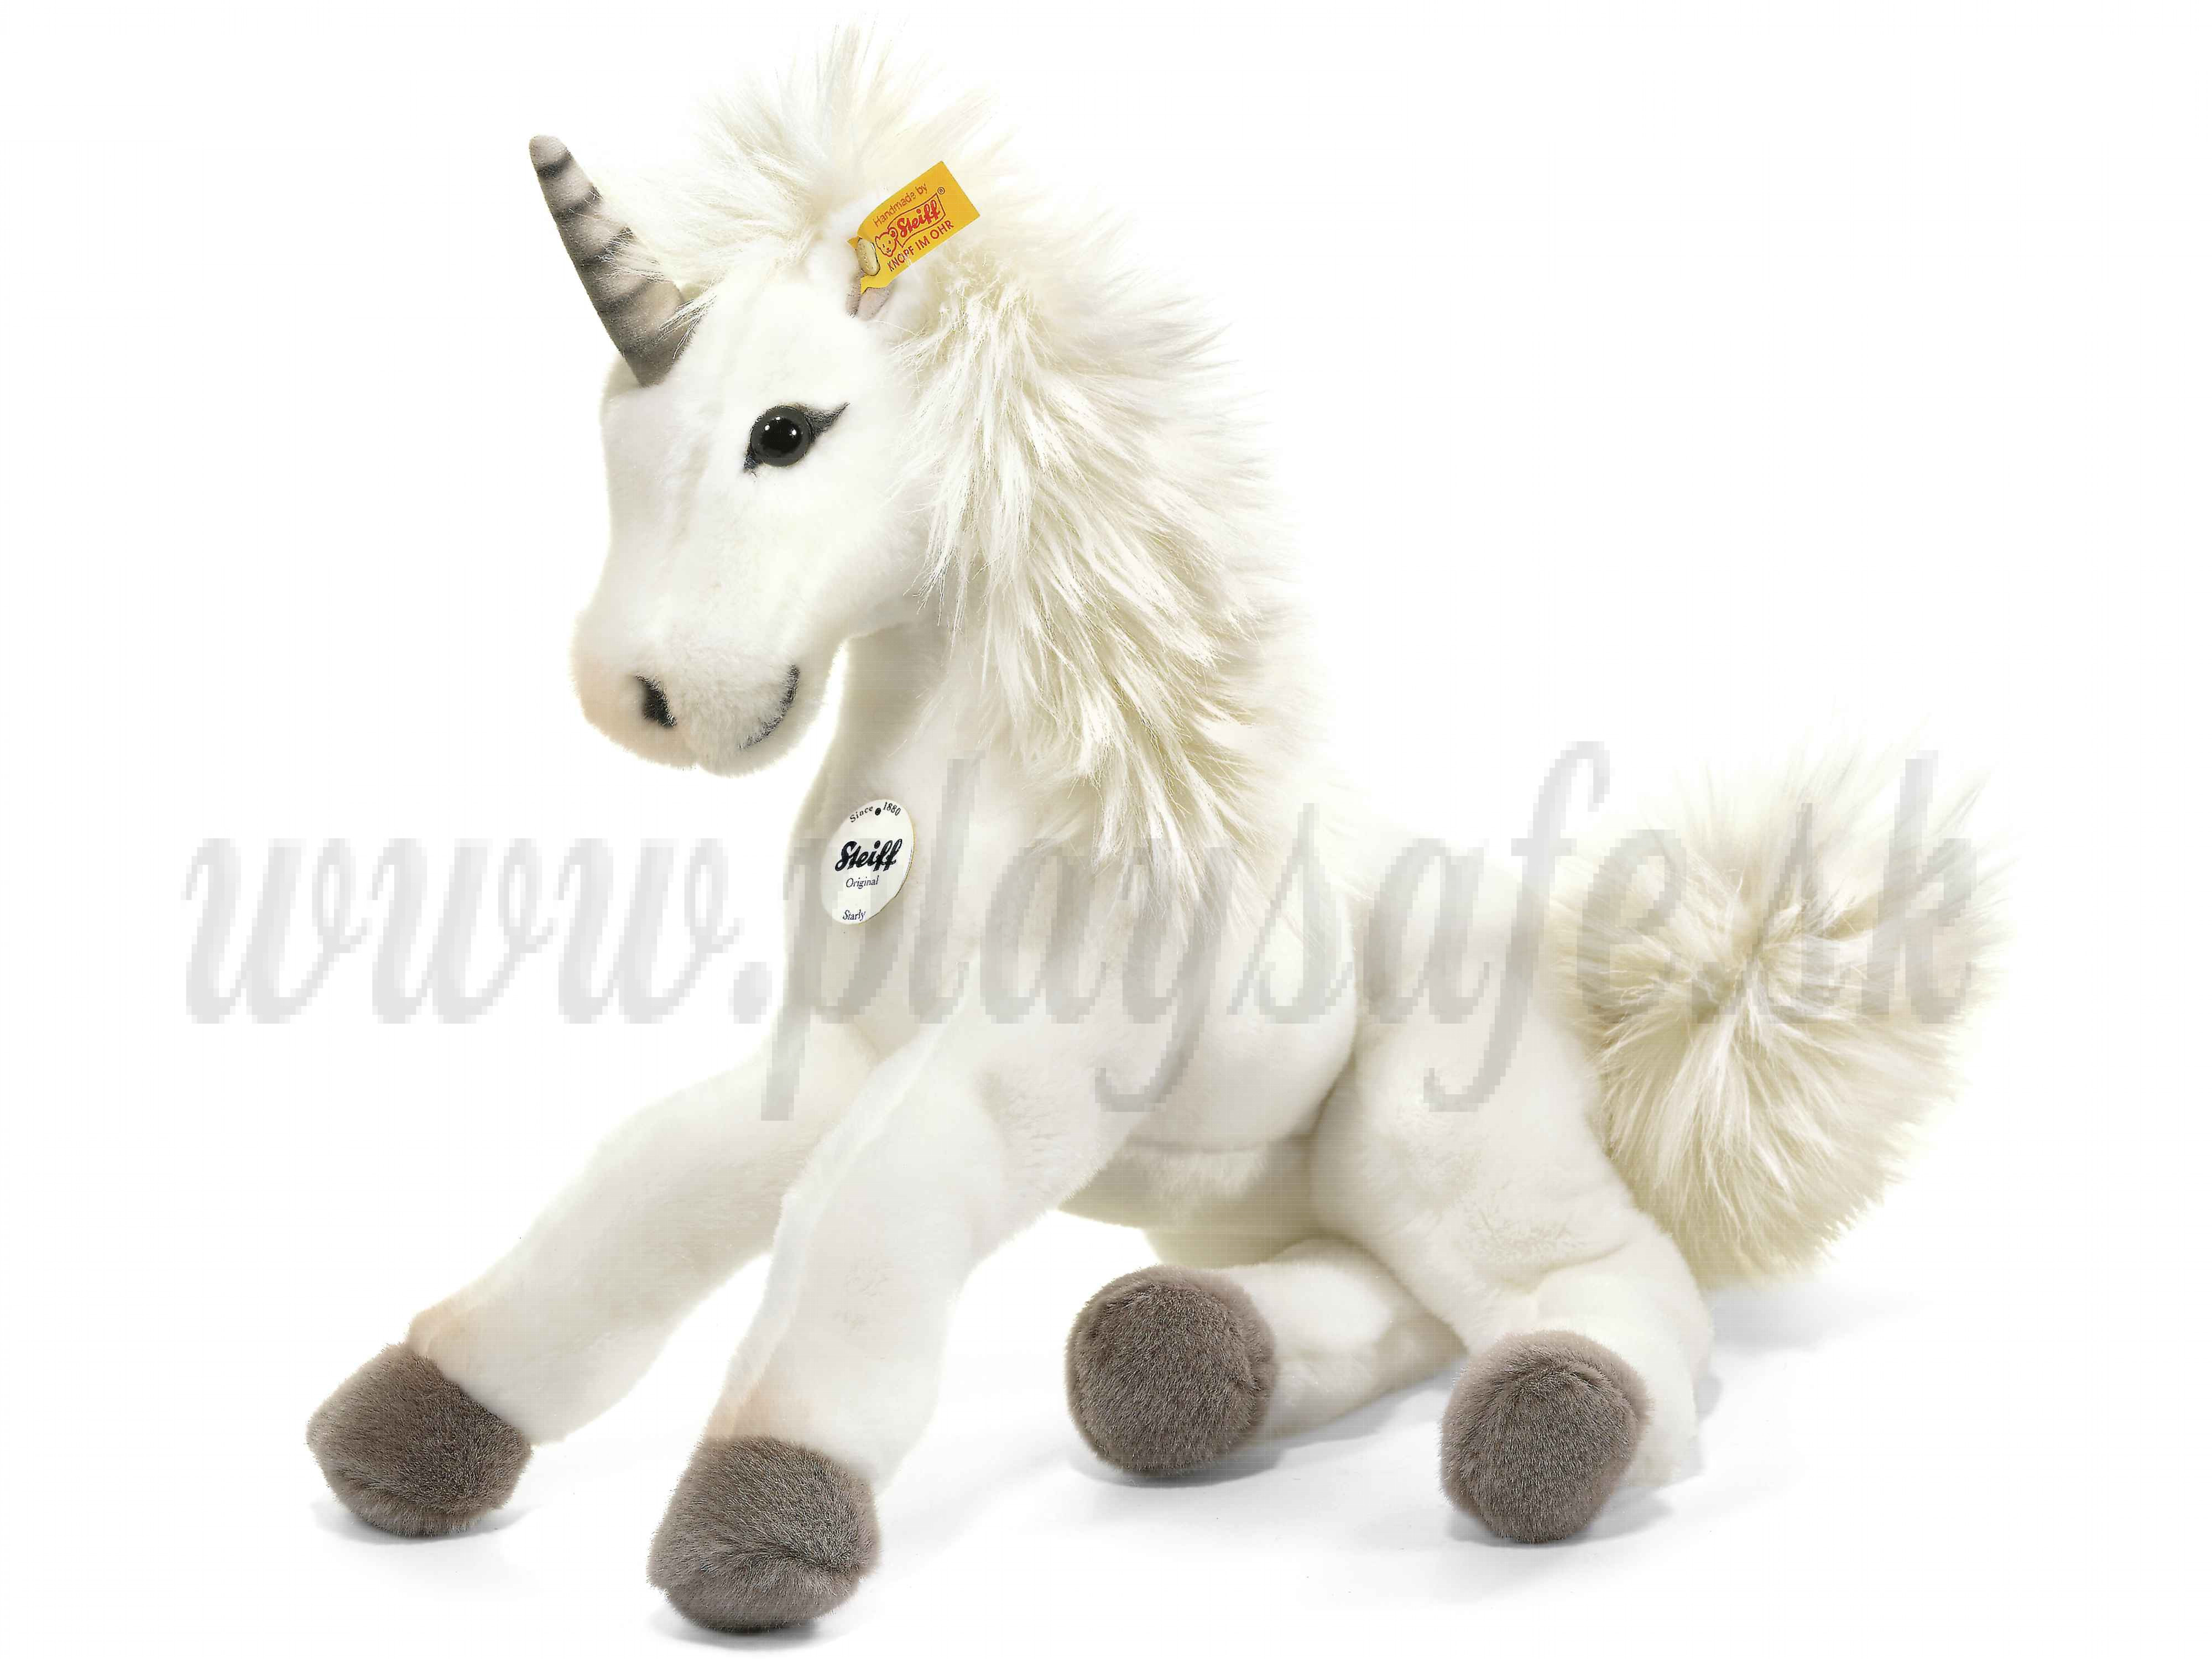 Steiff Soft toy Unicorn Starly, 35cm